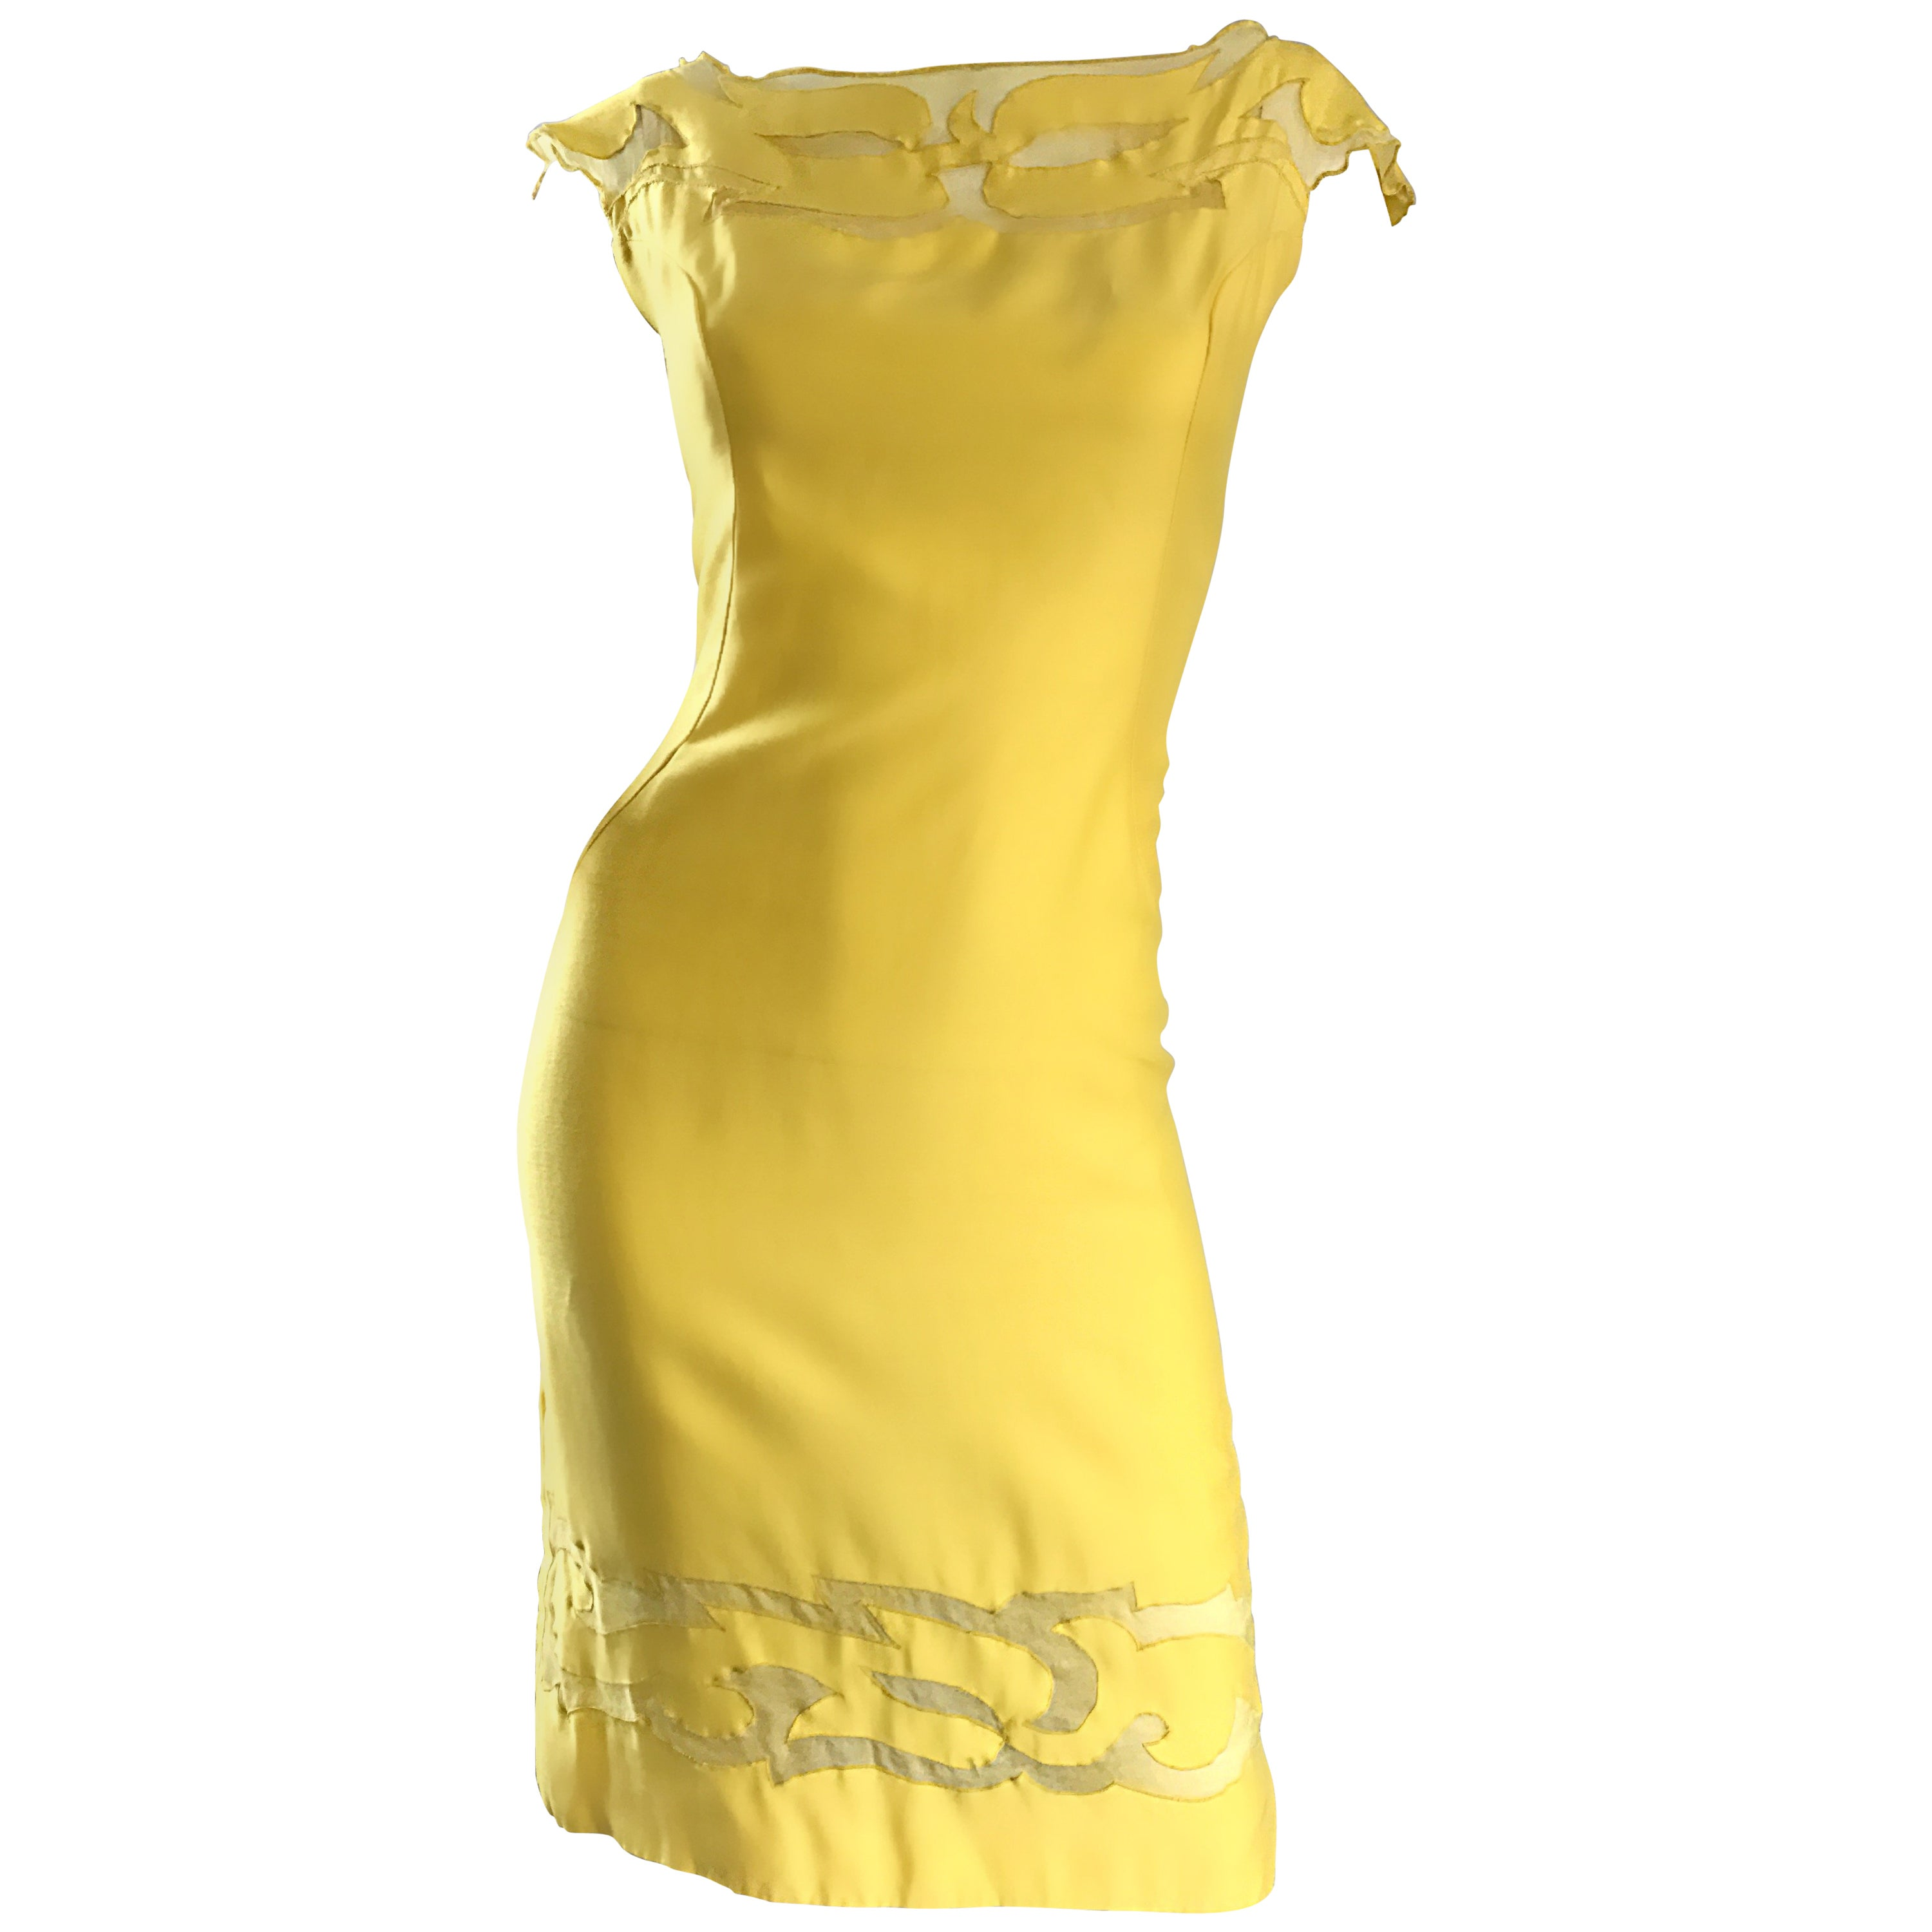 Amazing 1950s Canary Yellow Silk Vintage Cut - Out 50s Bombshell Wiggle Dress